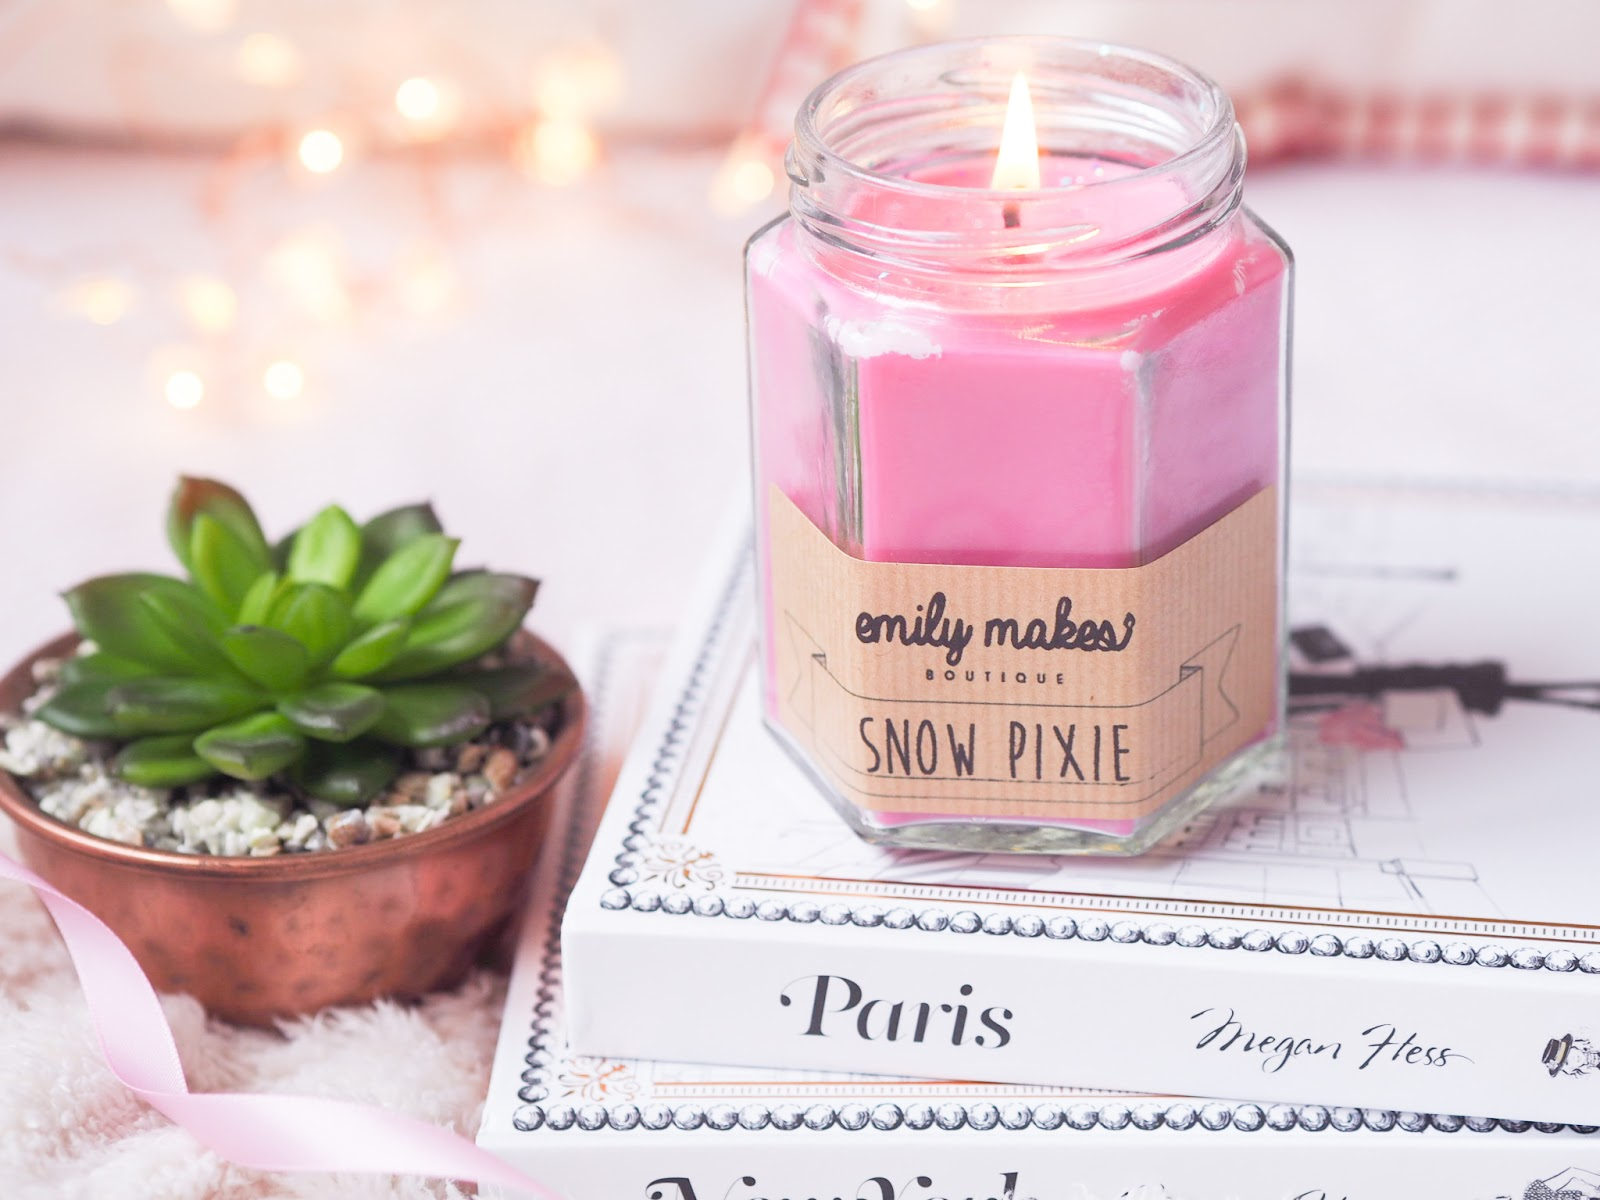 Emily Makes Boutique: Snow Pixie candle review | Kate Loves